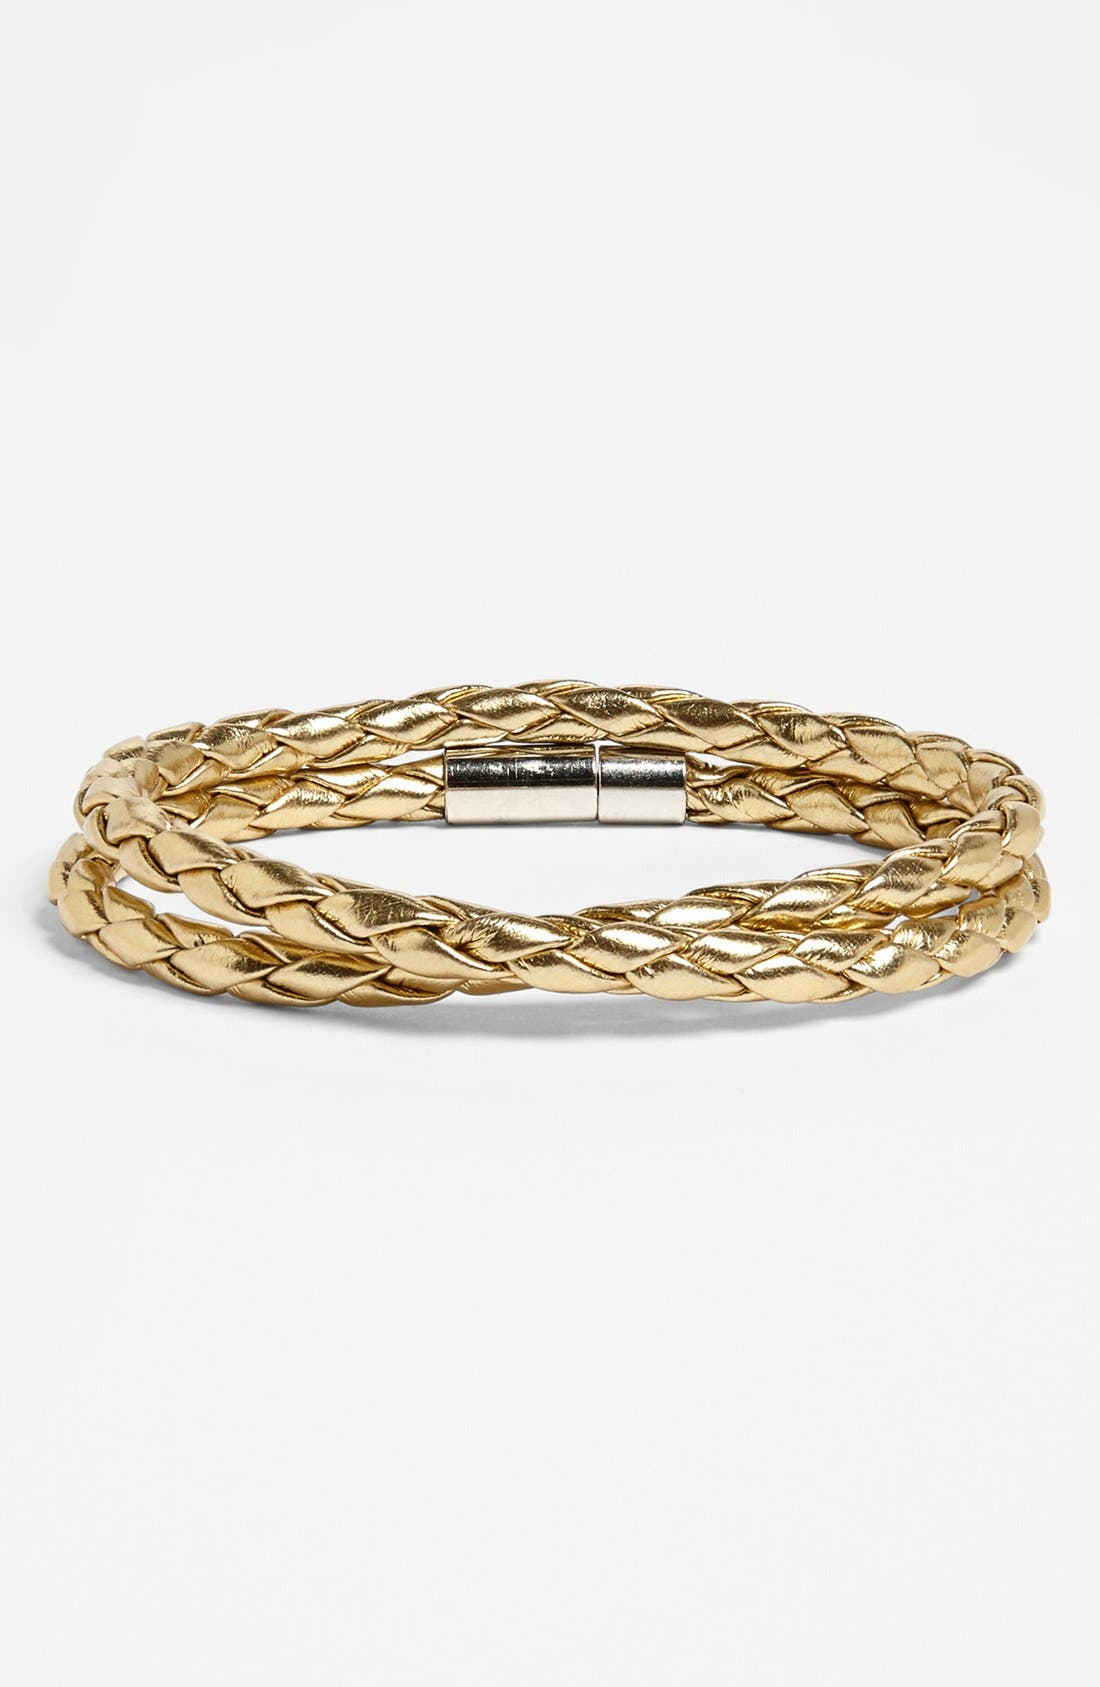 Alternate Image 1 Selected - Carole Faux Leather Braided Wrap Bracelet (Juniors)